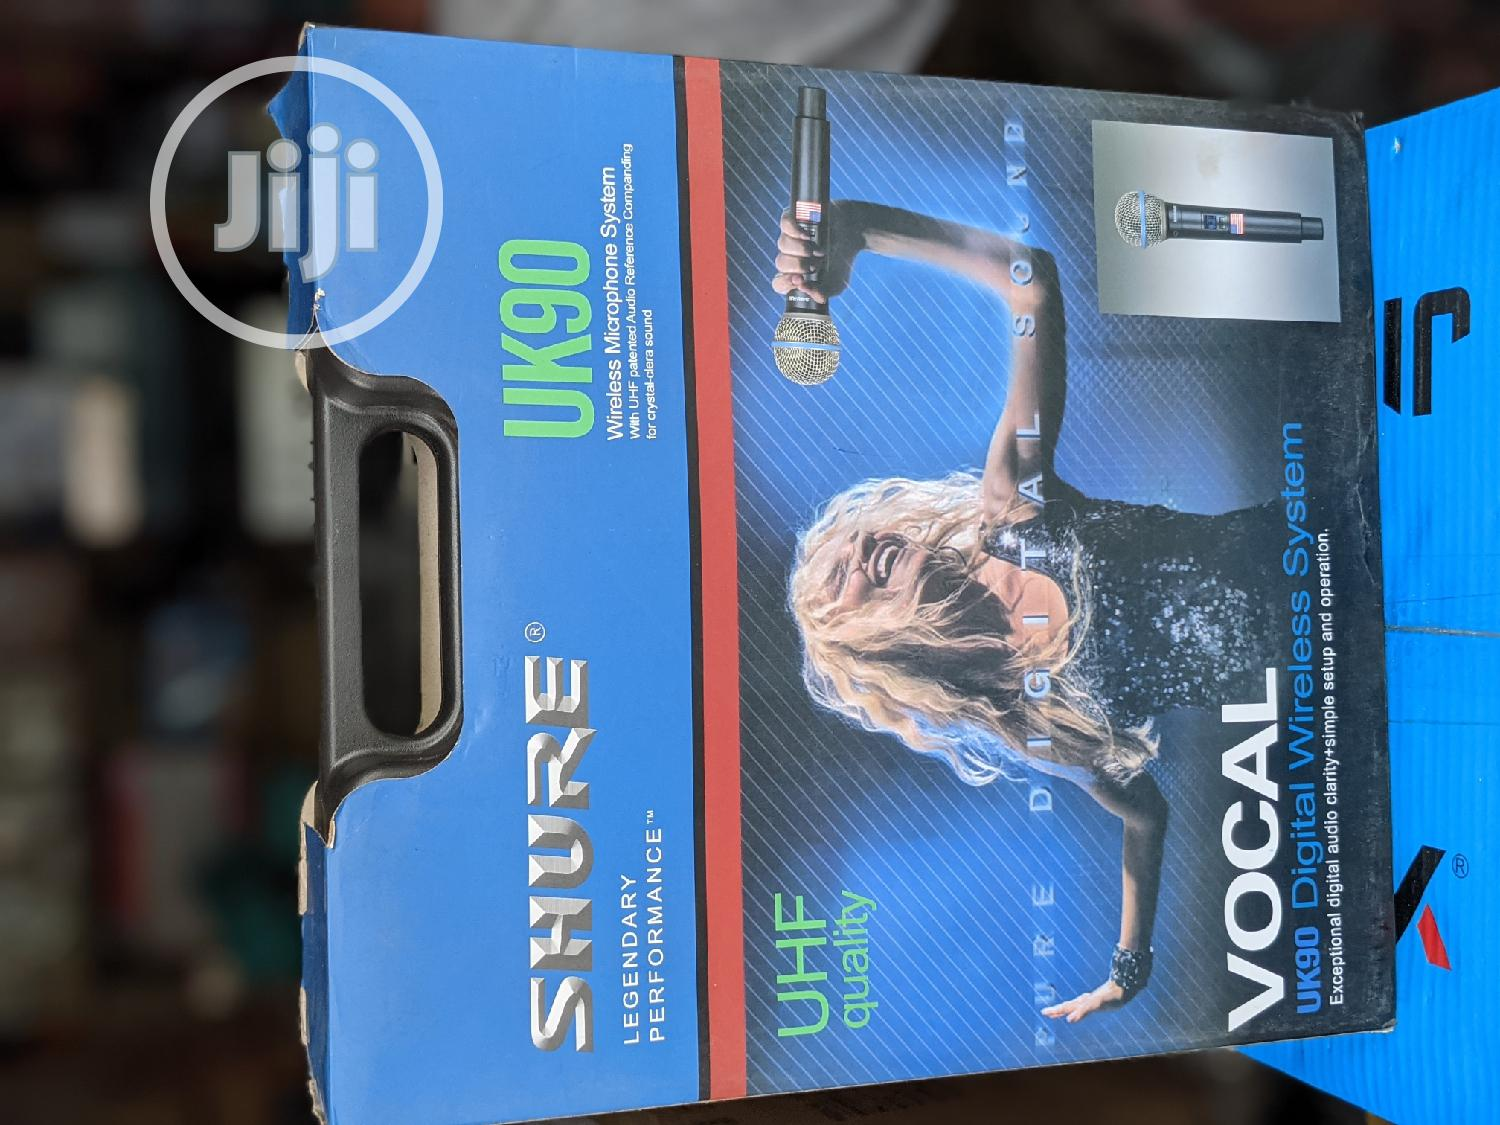 USA Shure Wireless Mic With Long Range,Digital Mics and Case